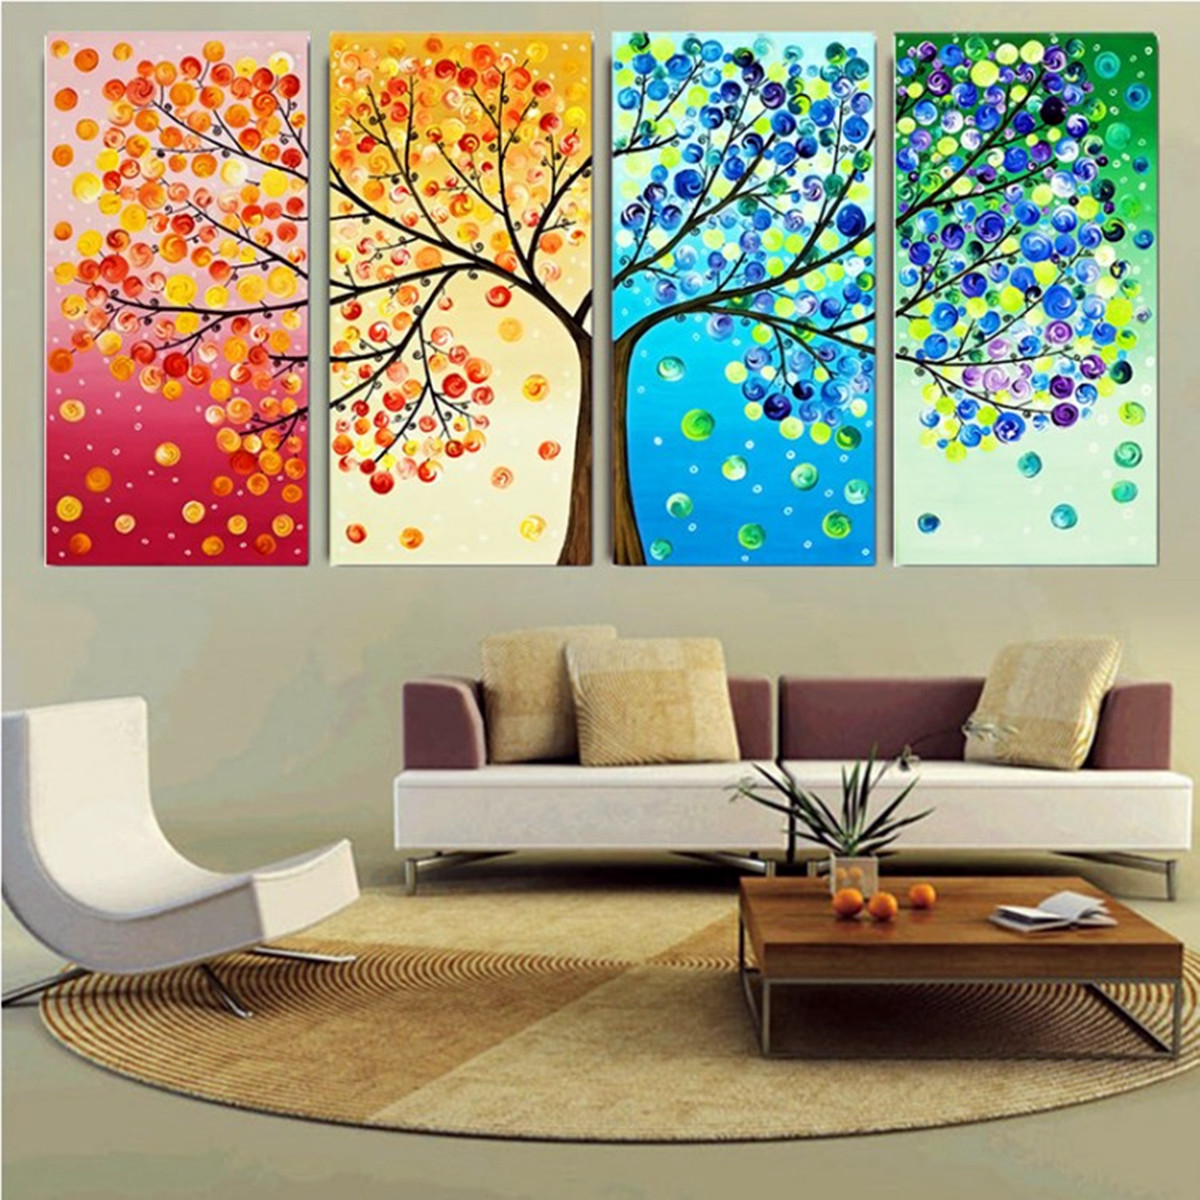 Diy handmade colorful season tree counted cross stitch for Handmade items for home